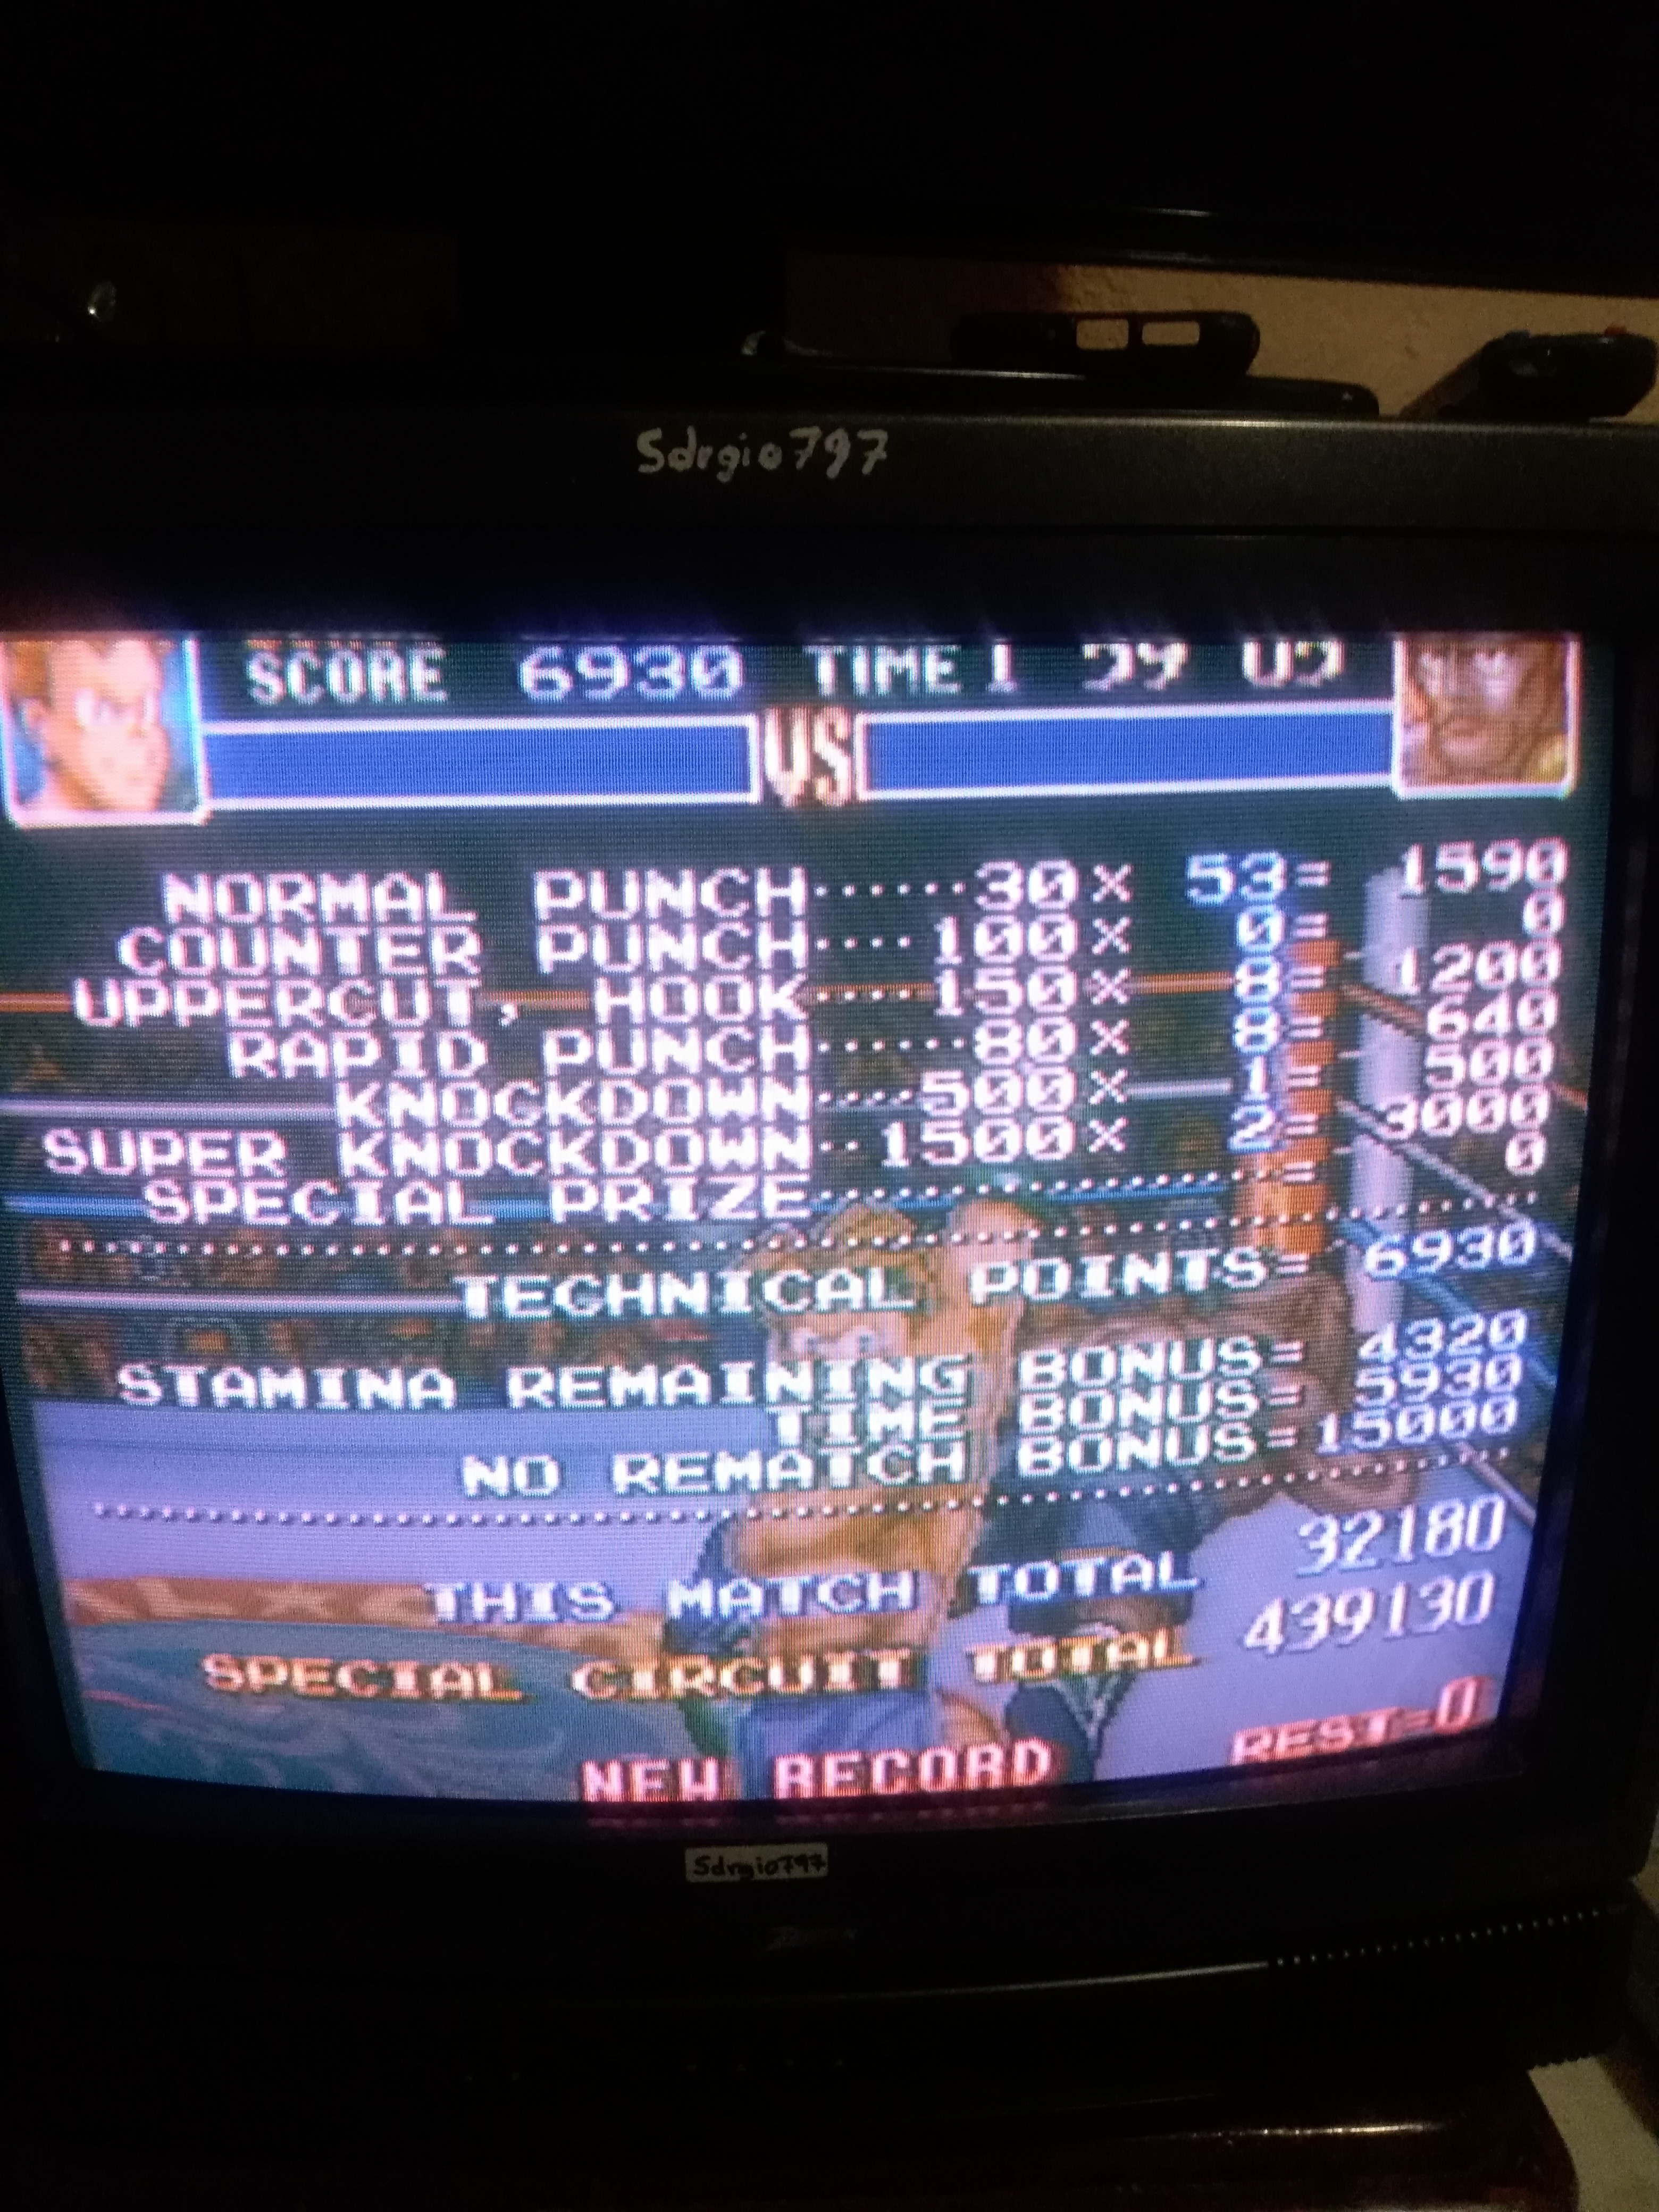 Sdrgio797: Super Punch-Out!! [Special Circuit] (SNES/Super Famicom) 439,130 points on 2020-07-07 00:02:36